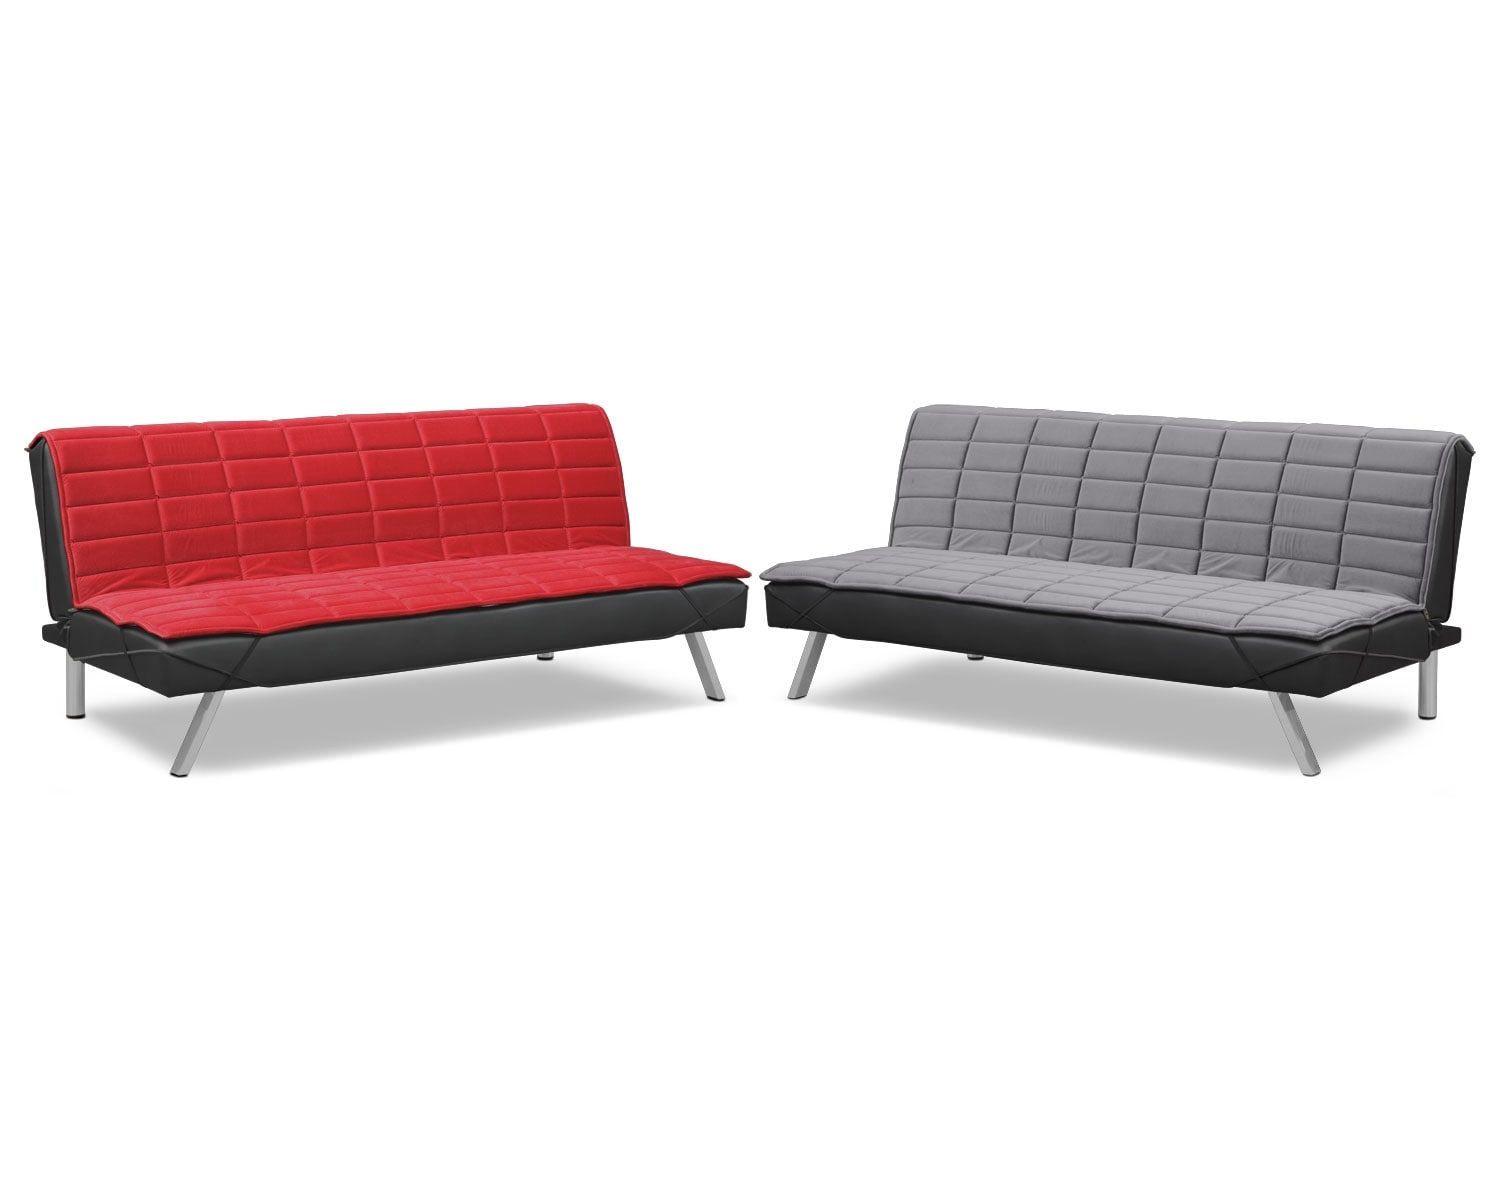 The Lotus Futon Sofa Bed Collection